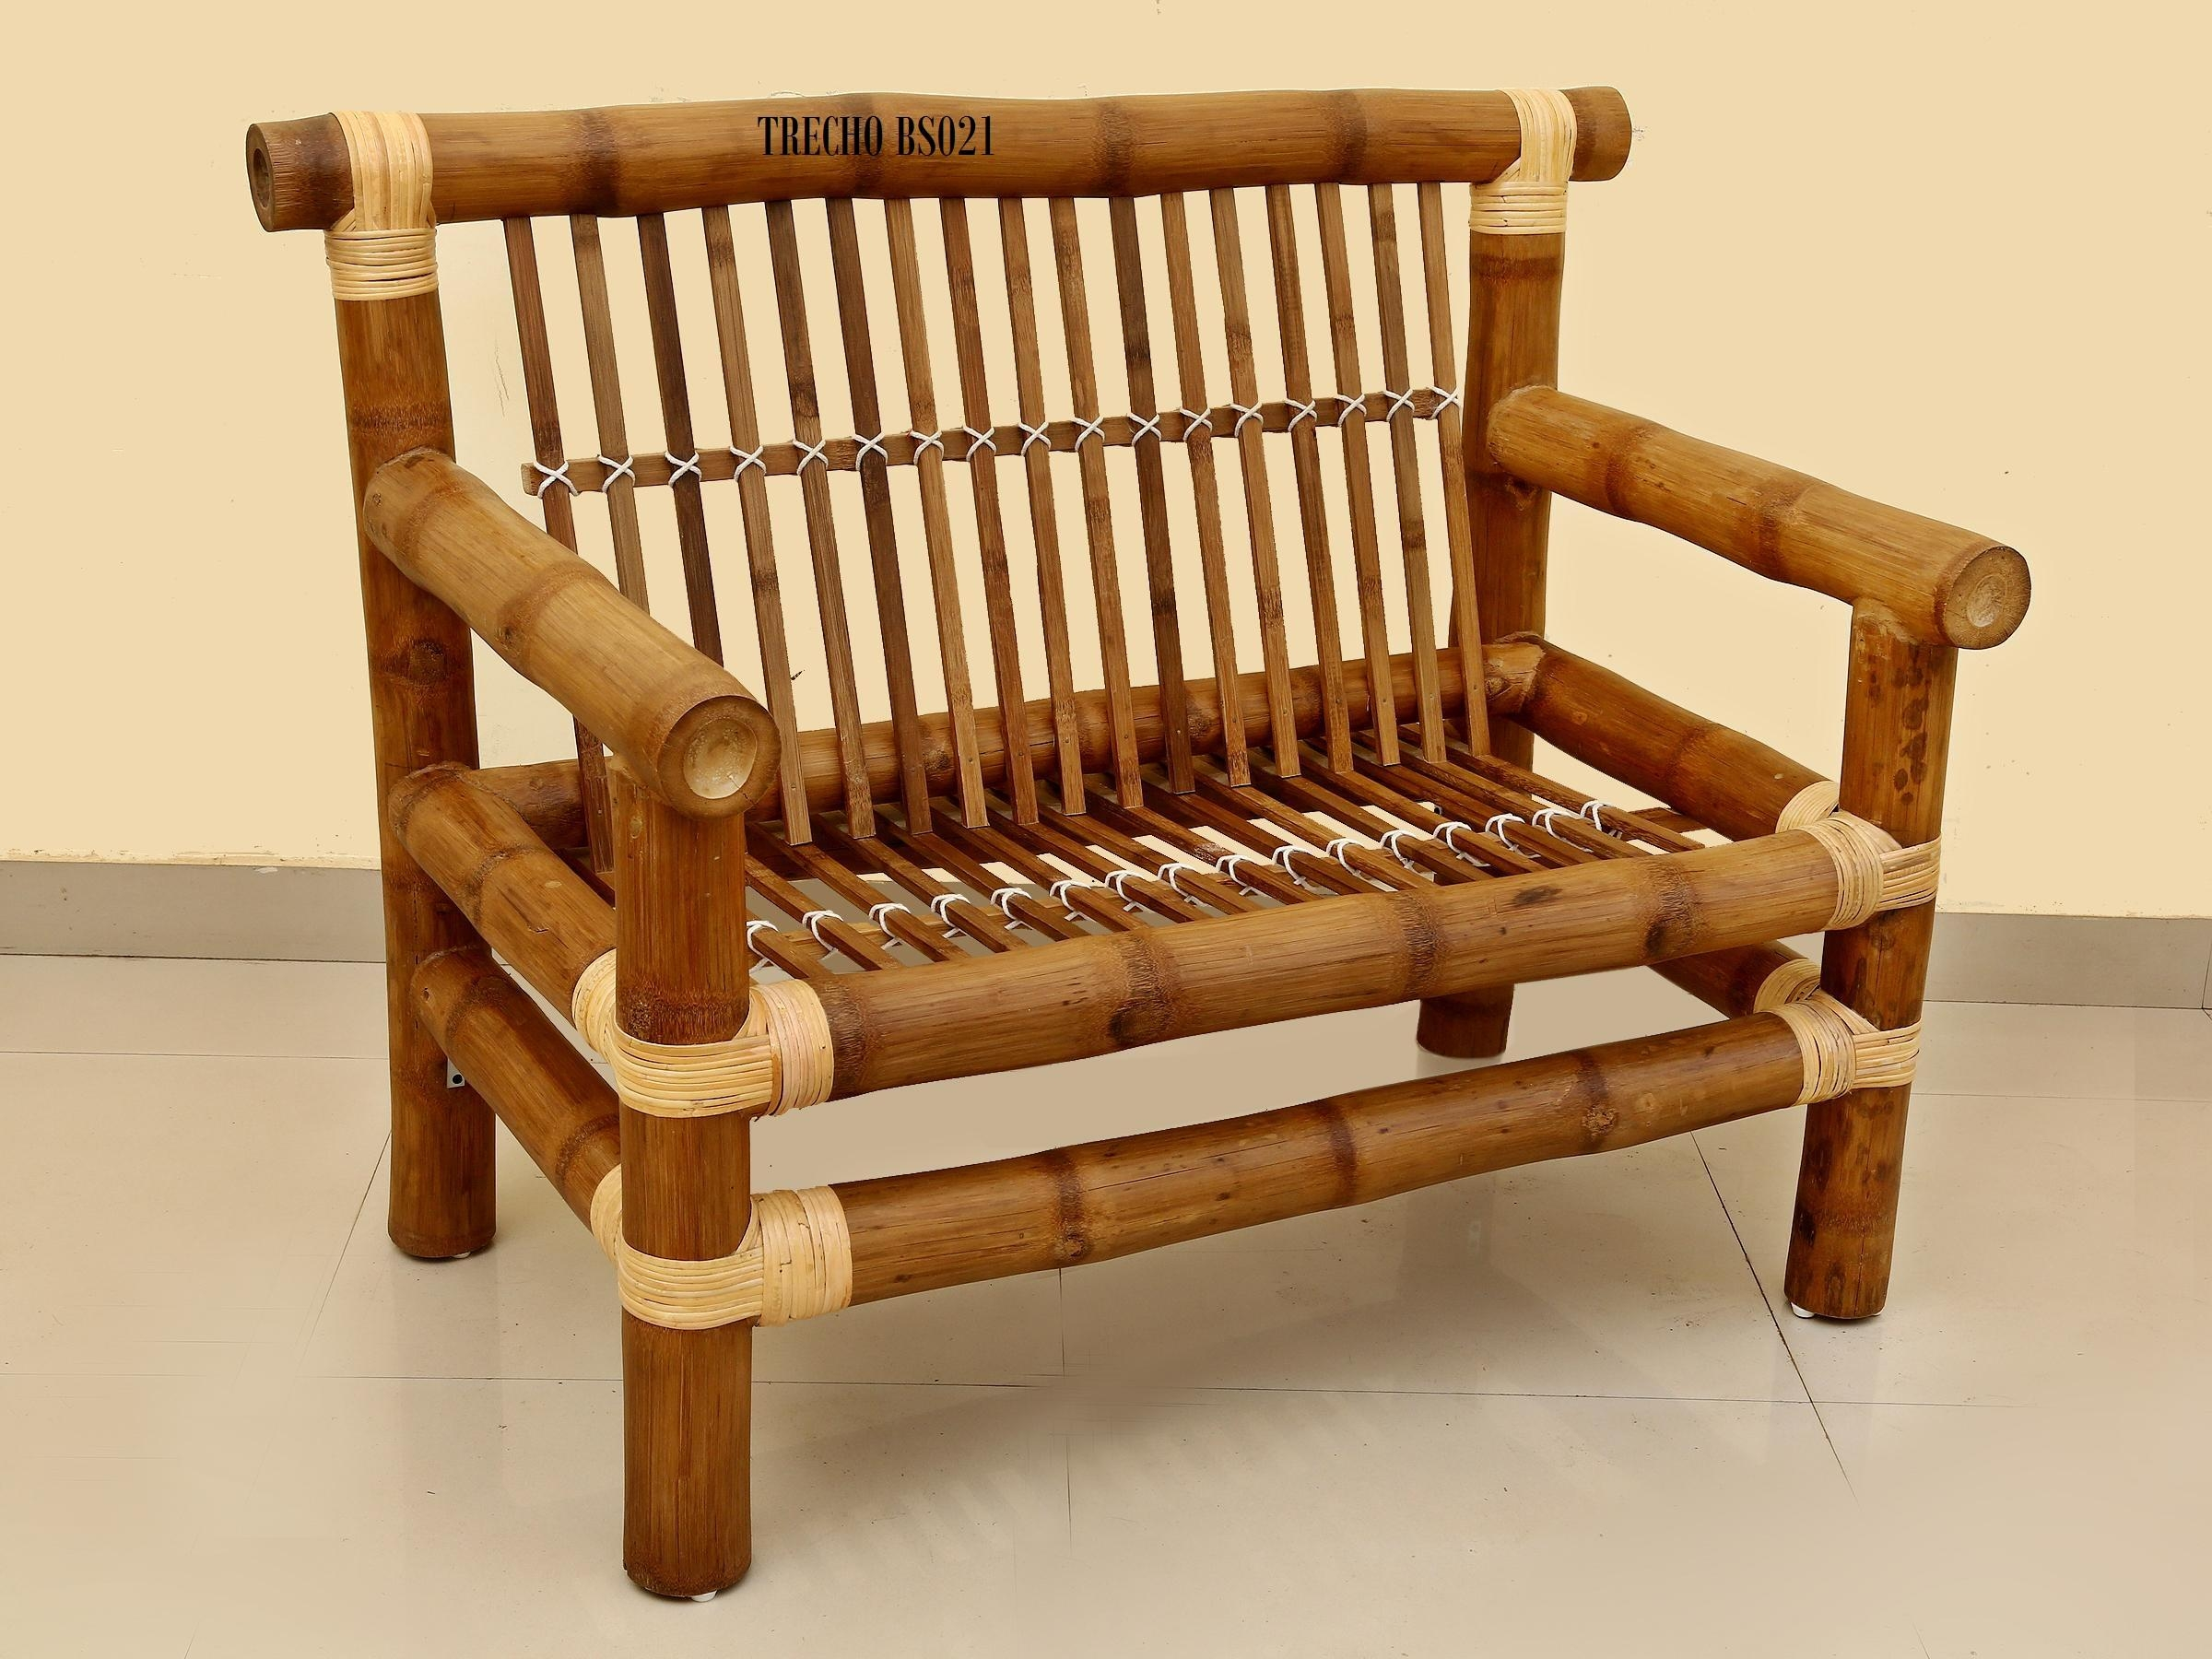 Bamboo Cane Furniture Buy Online India – Suppliers And Manufacturer Inside Bamboo Sofas (View 11 of 20)